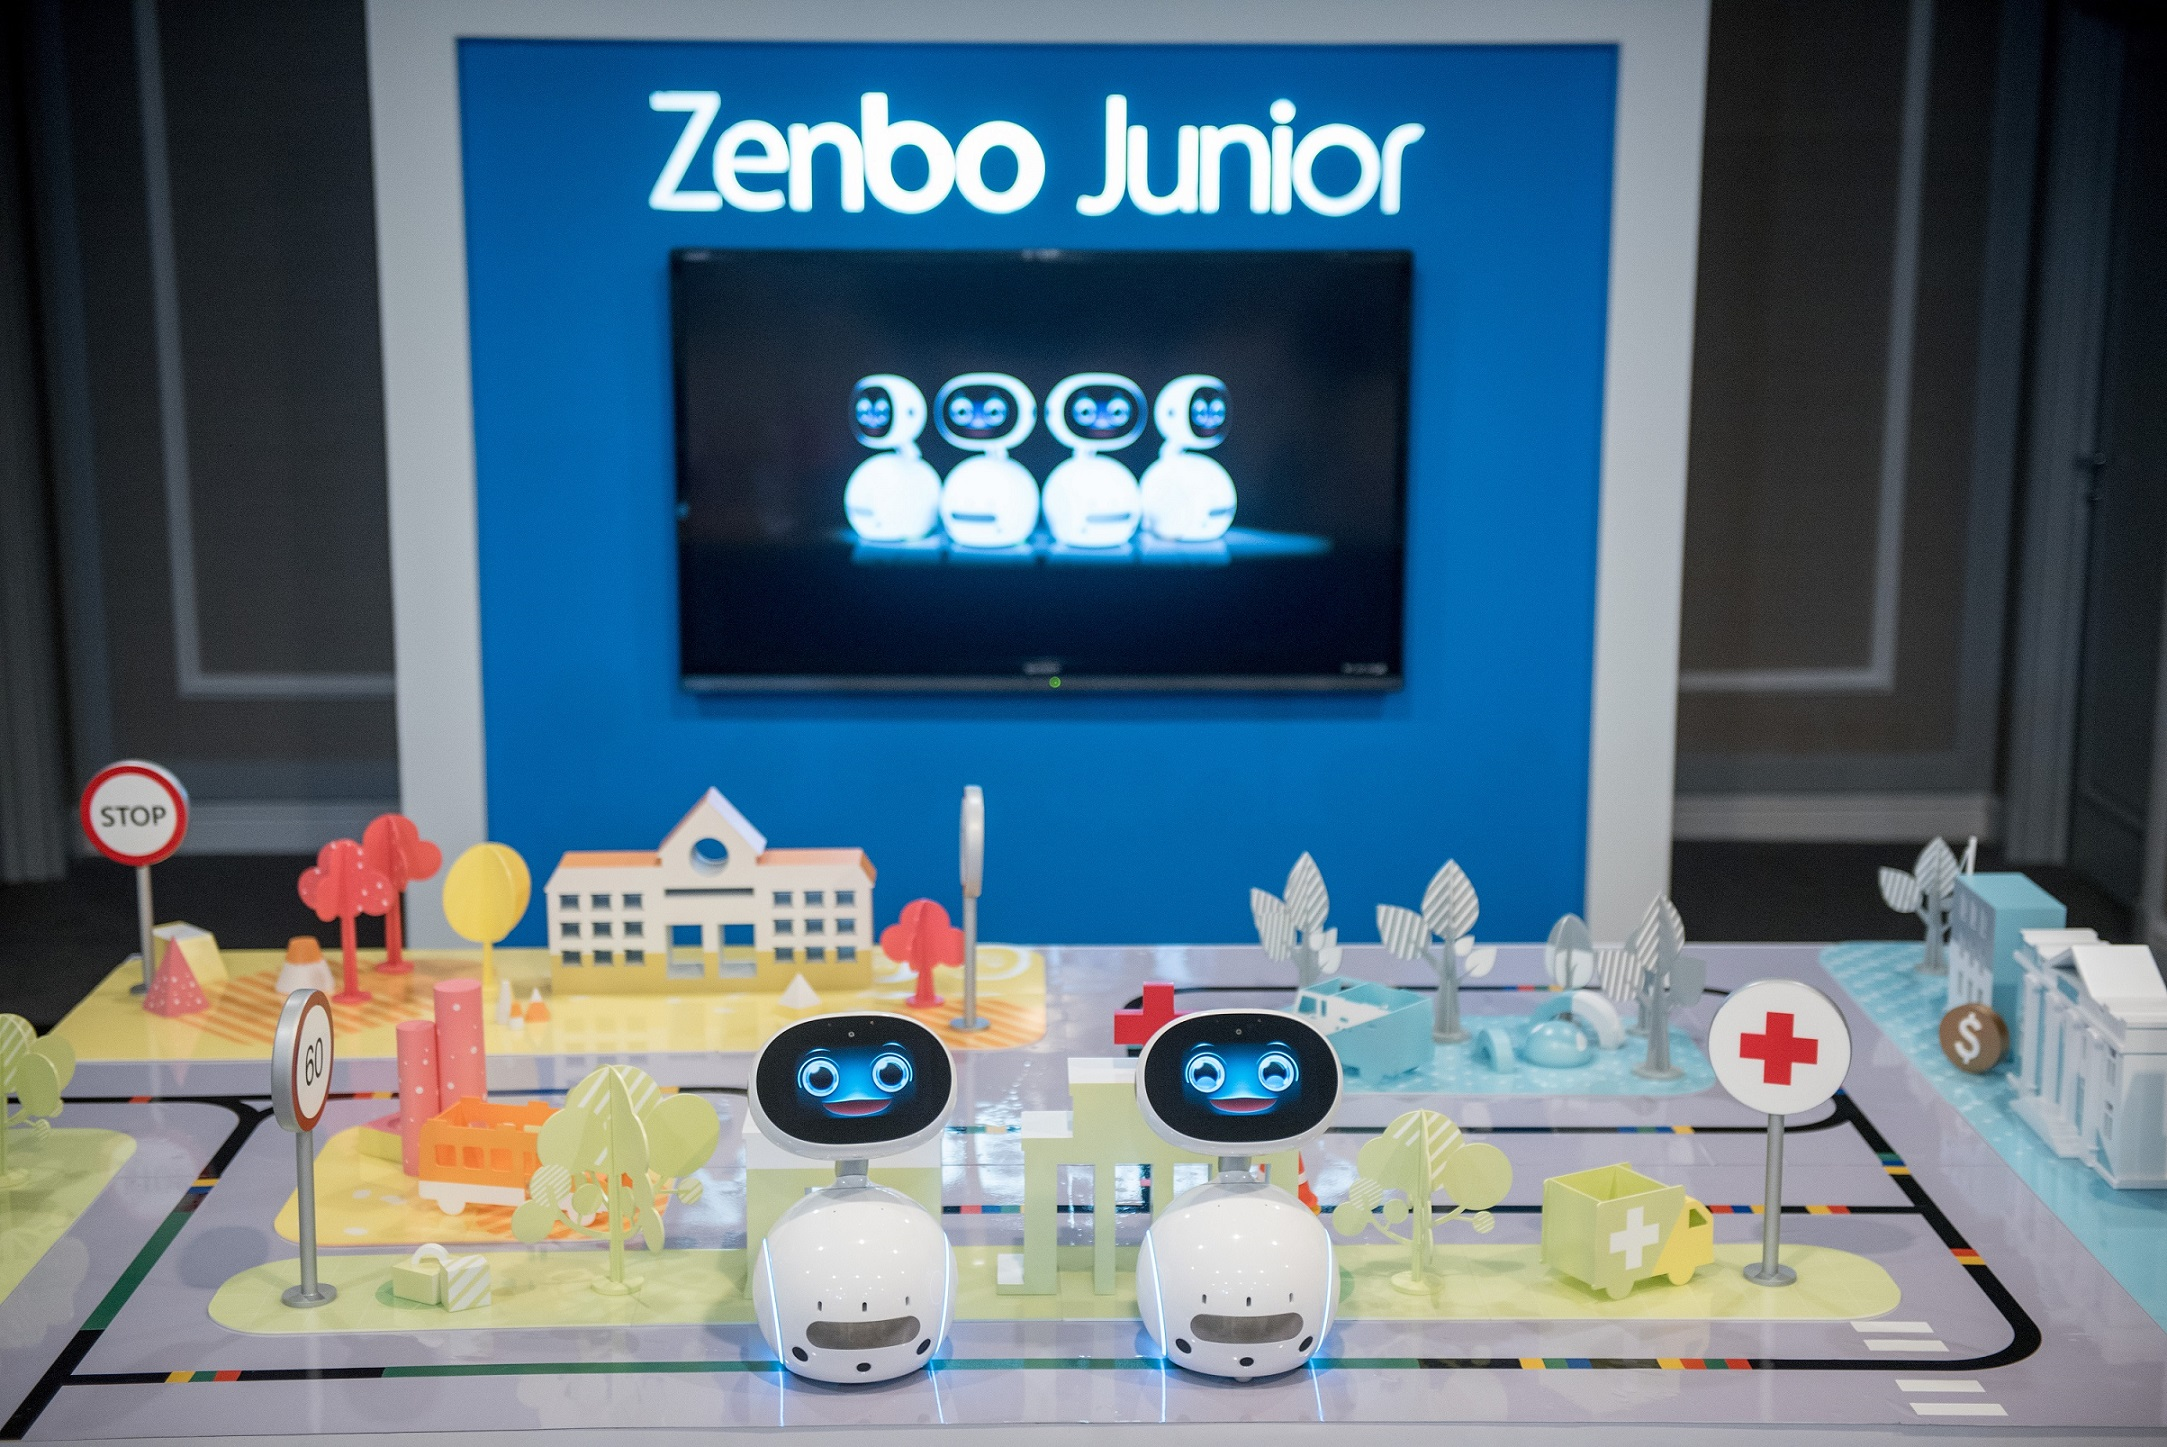 Zenbo Junior is a new AI-enabled robotics platform that allows developers, system integrators and business partners to create flexible and easily manageable robotics solutions to improve business operations and customer experiences